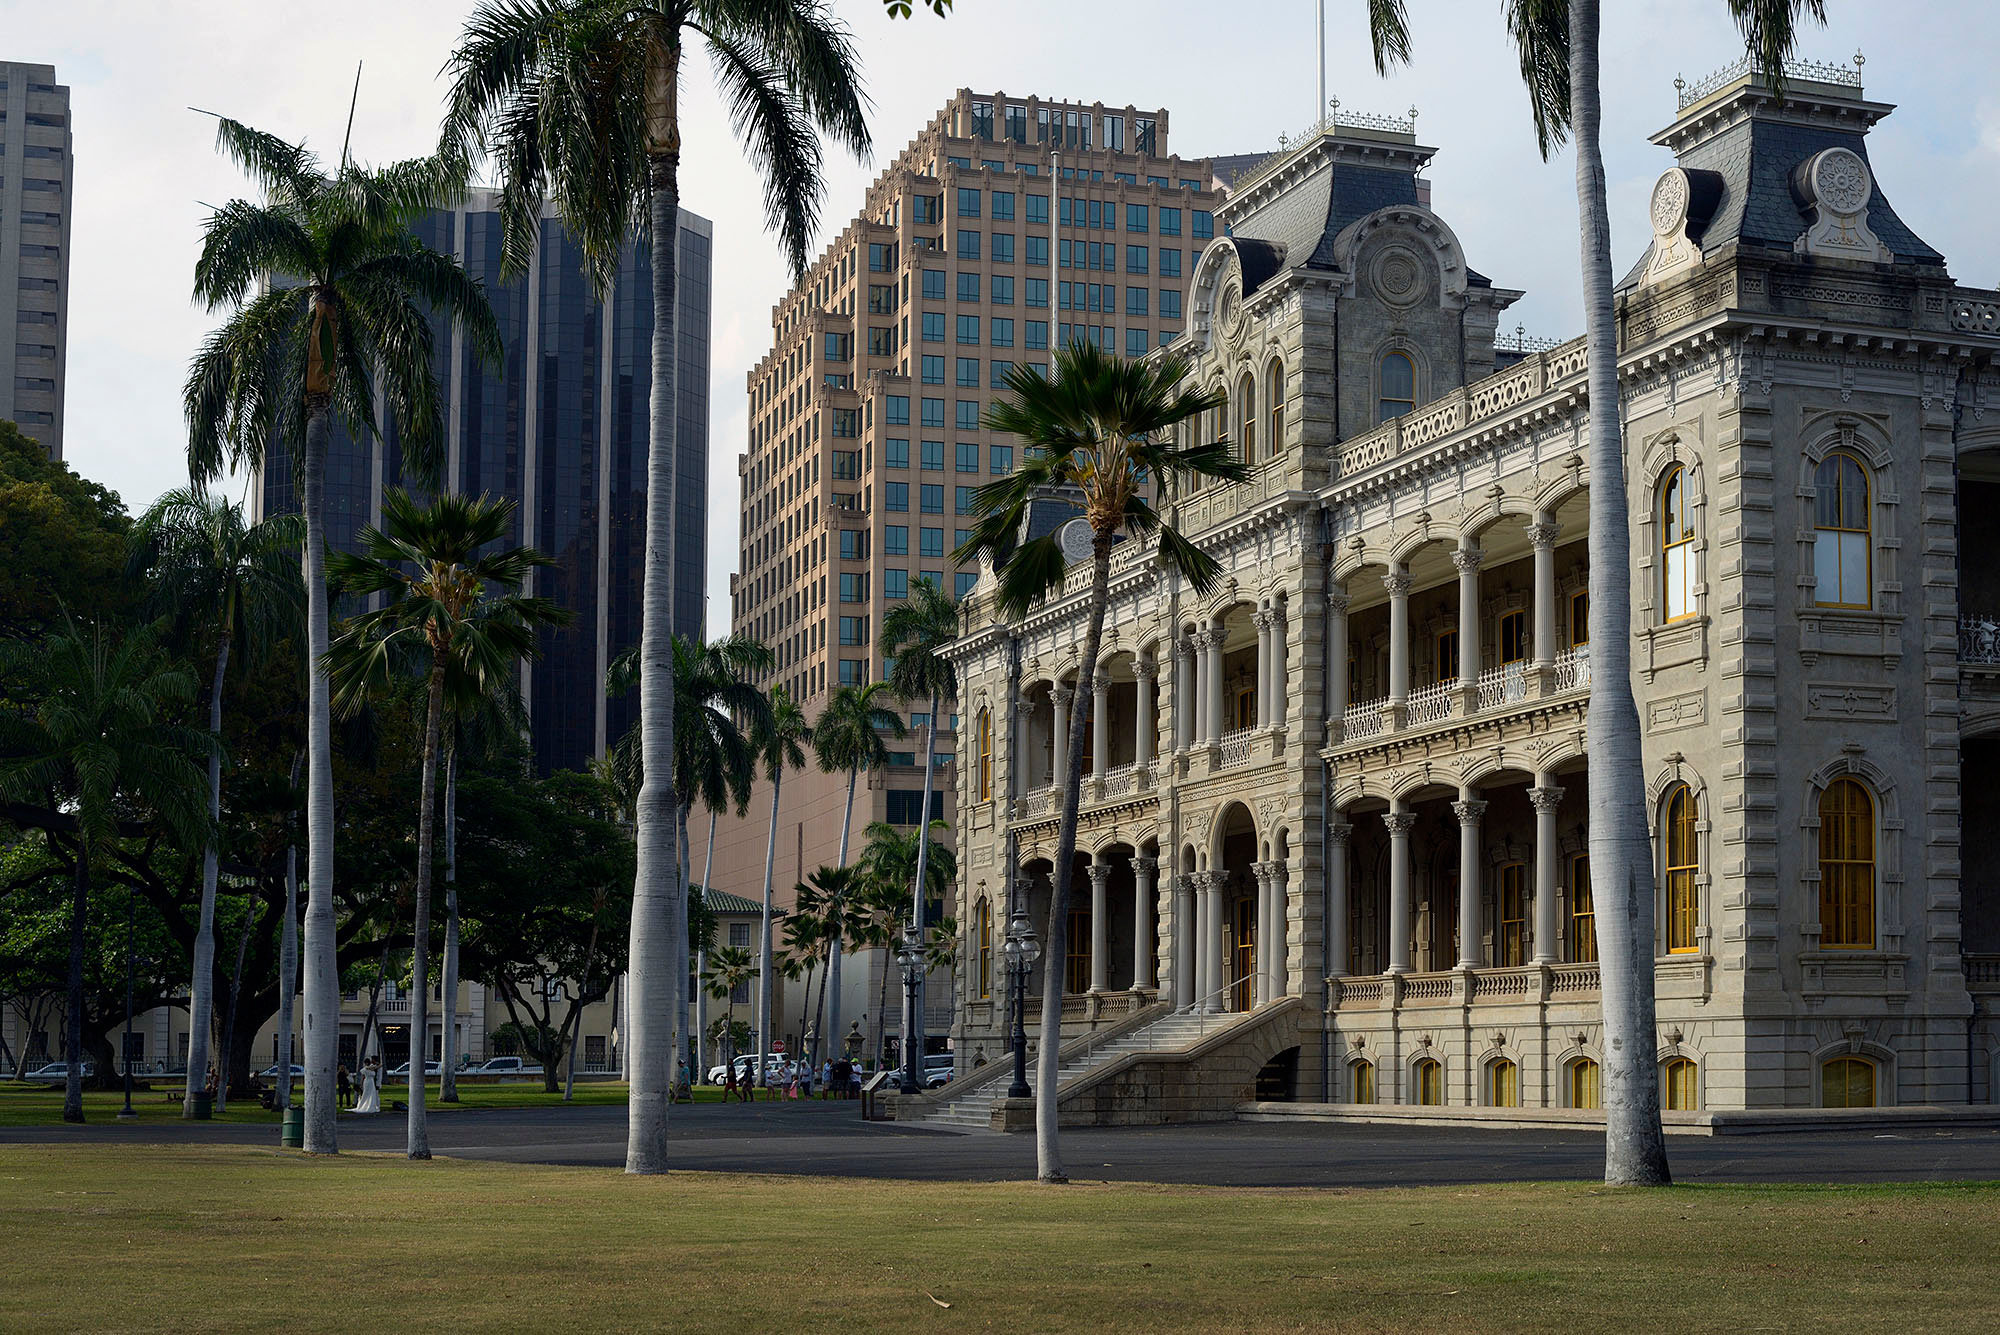 Iolani Palace, seat of government for the Hawaiian kingdom